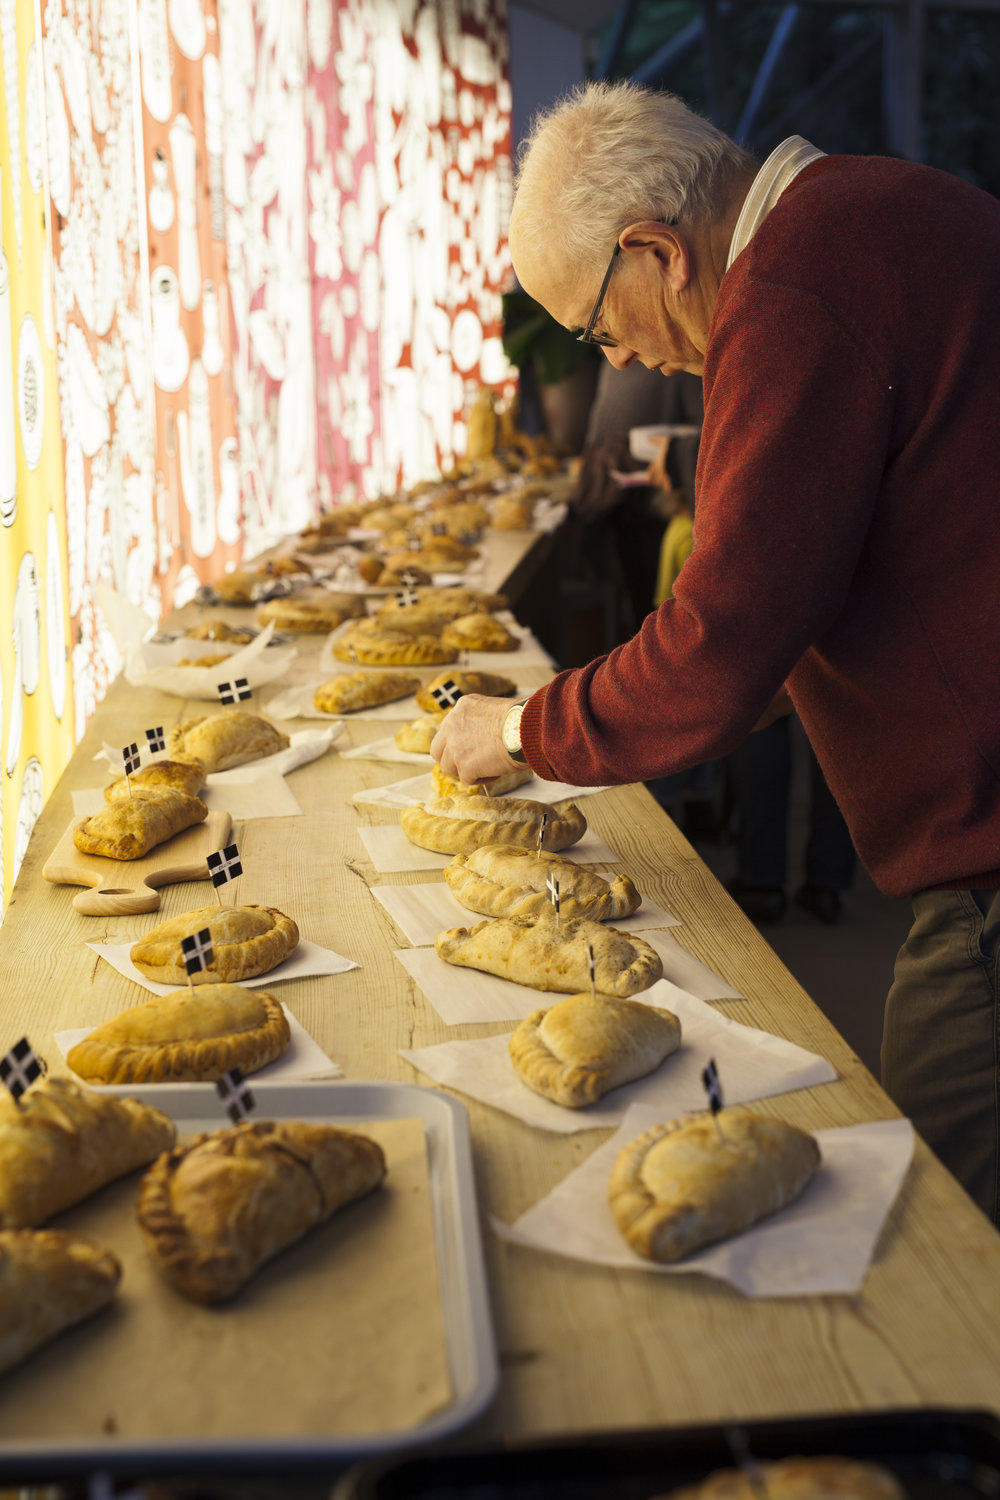 6th Annual World Pasty Championships at The Eden Project